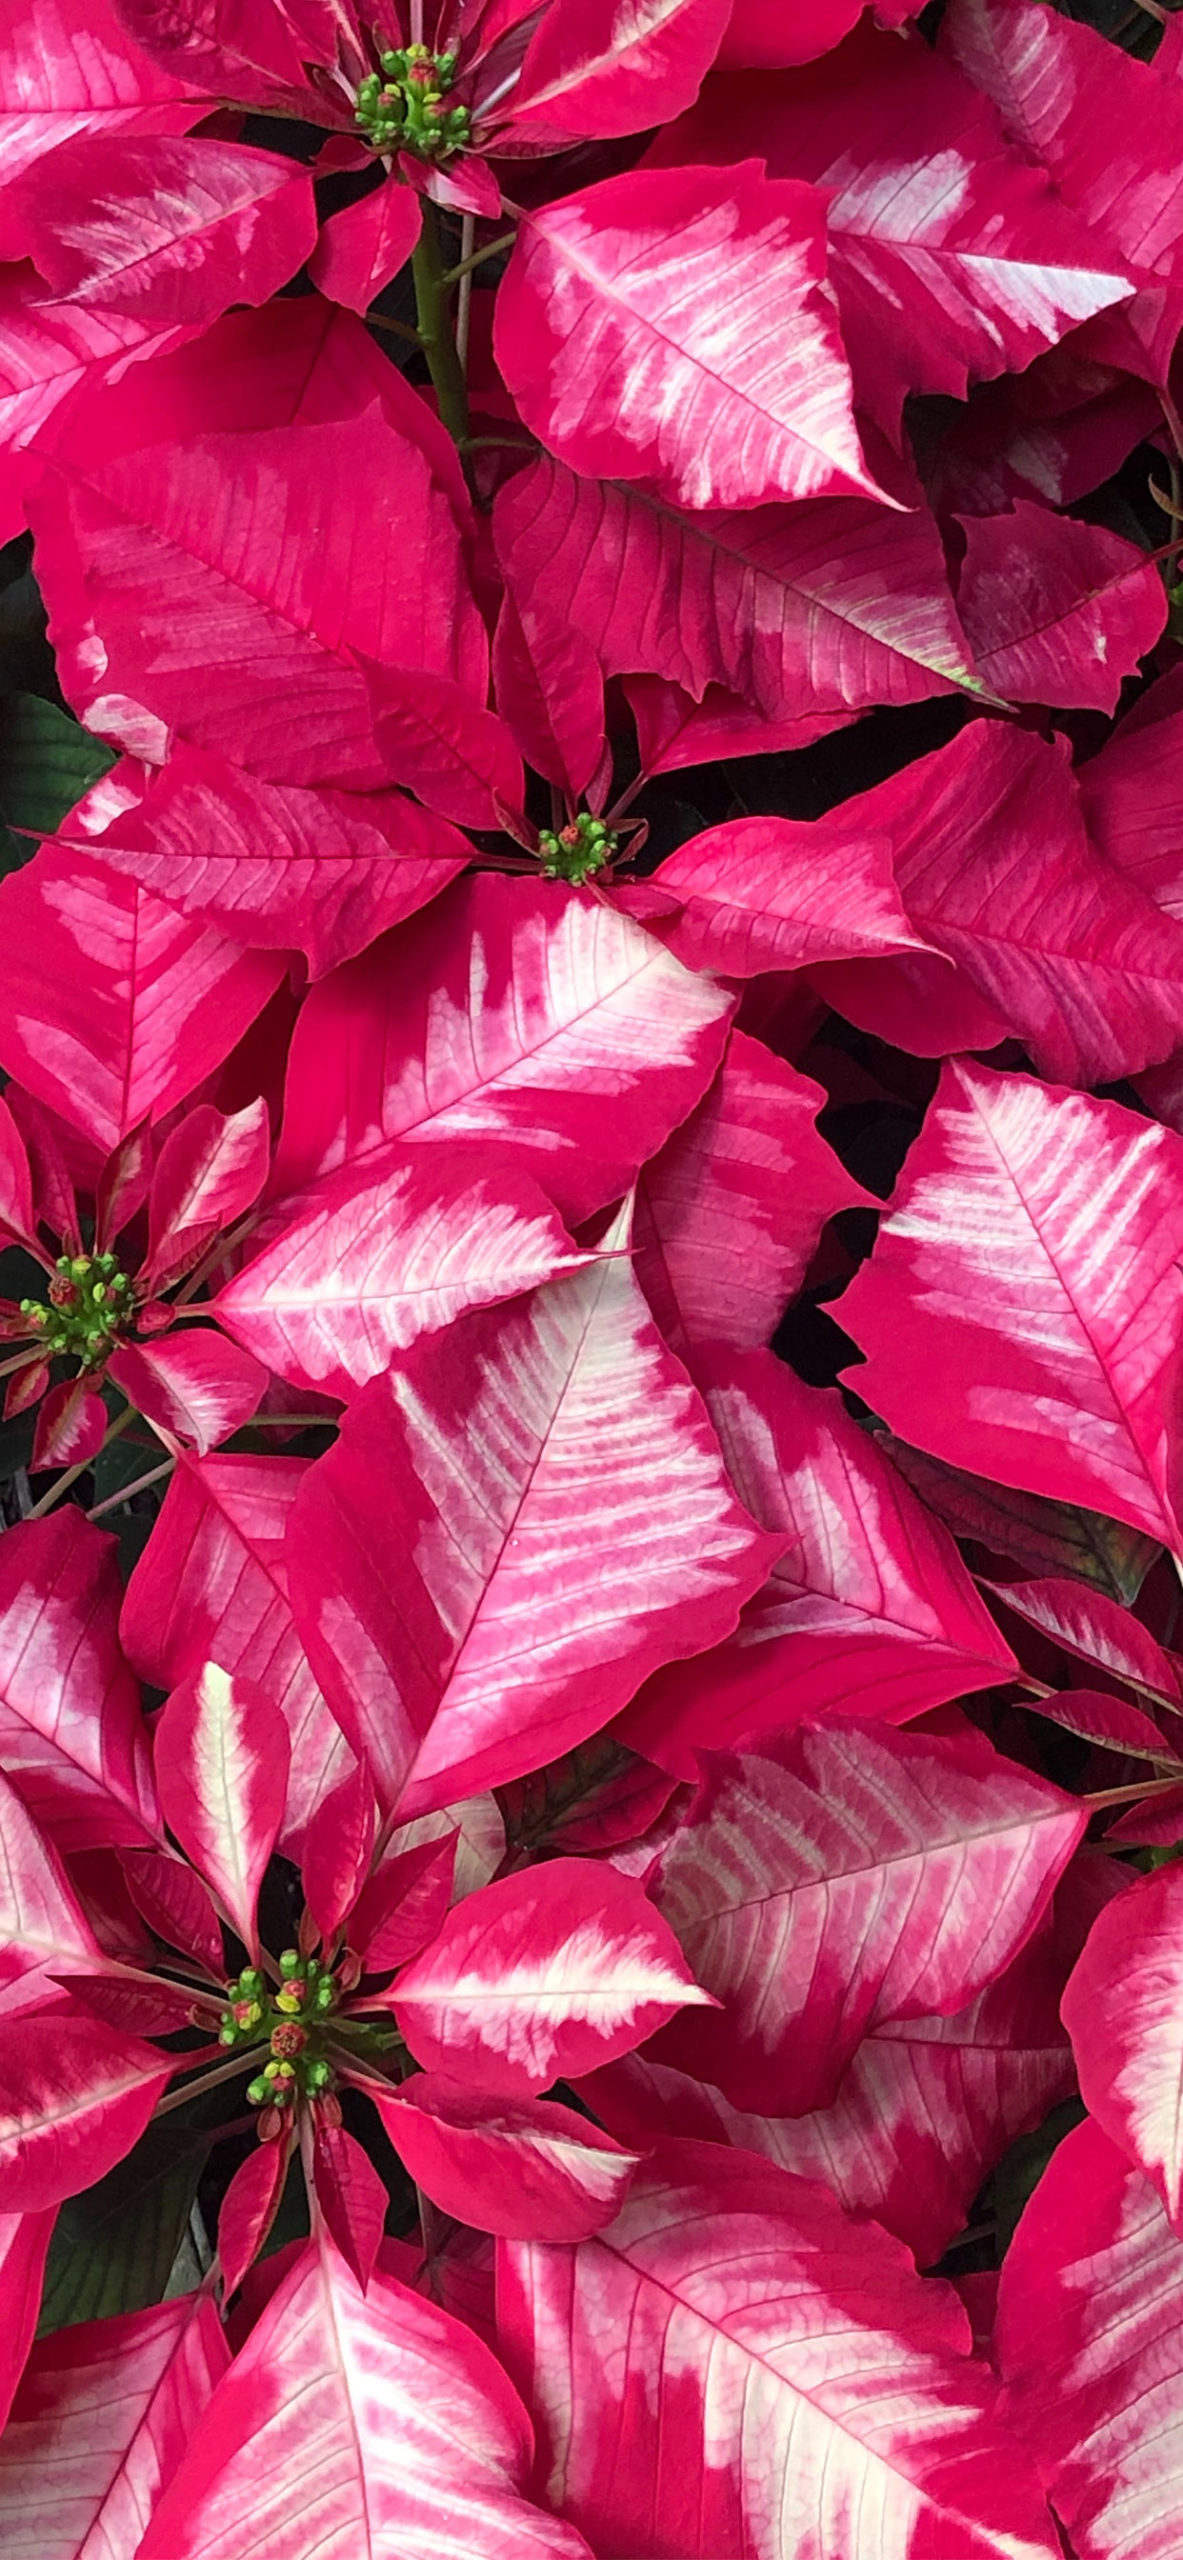 iphone Wallpapers pink poinsettia scaled Poinsettia